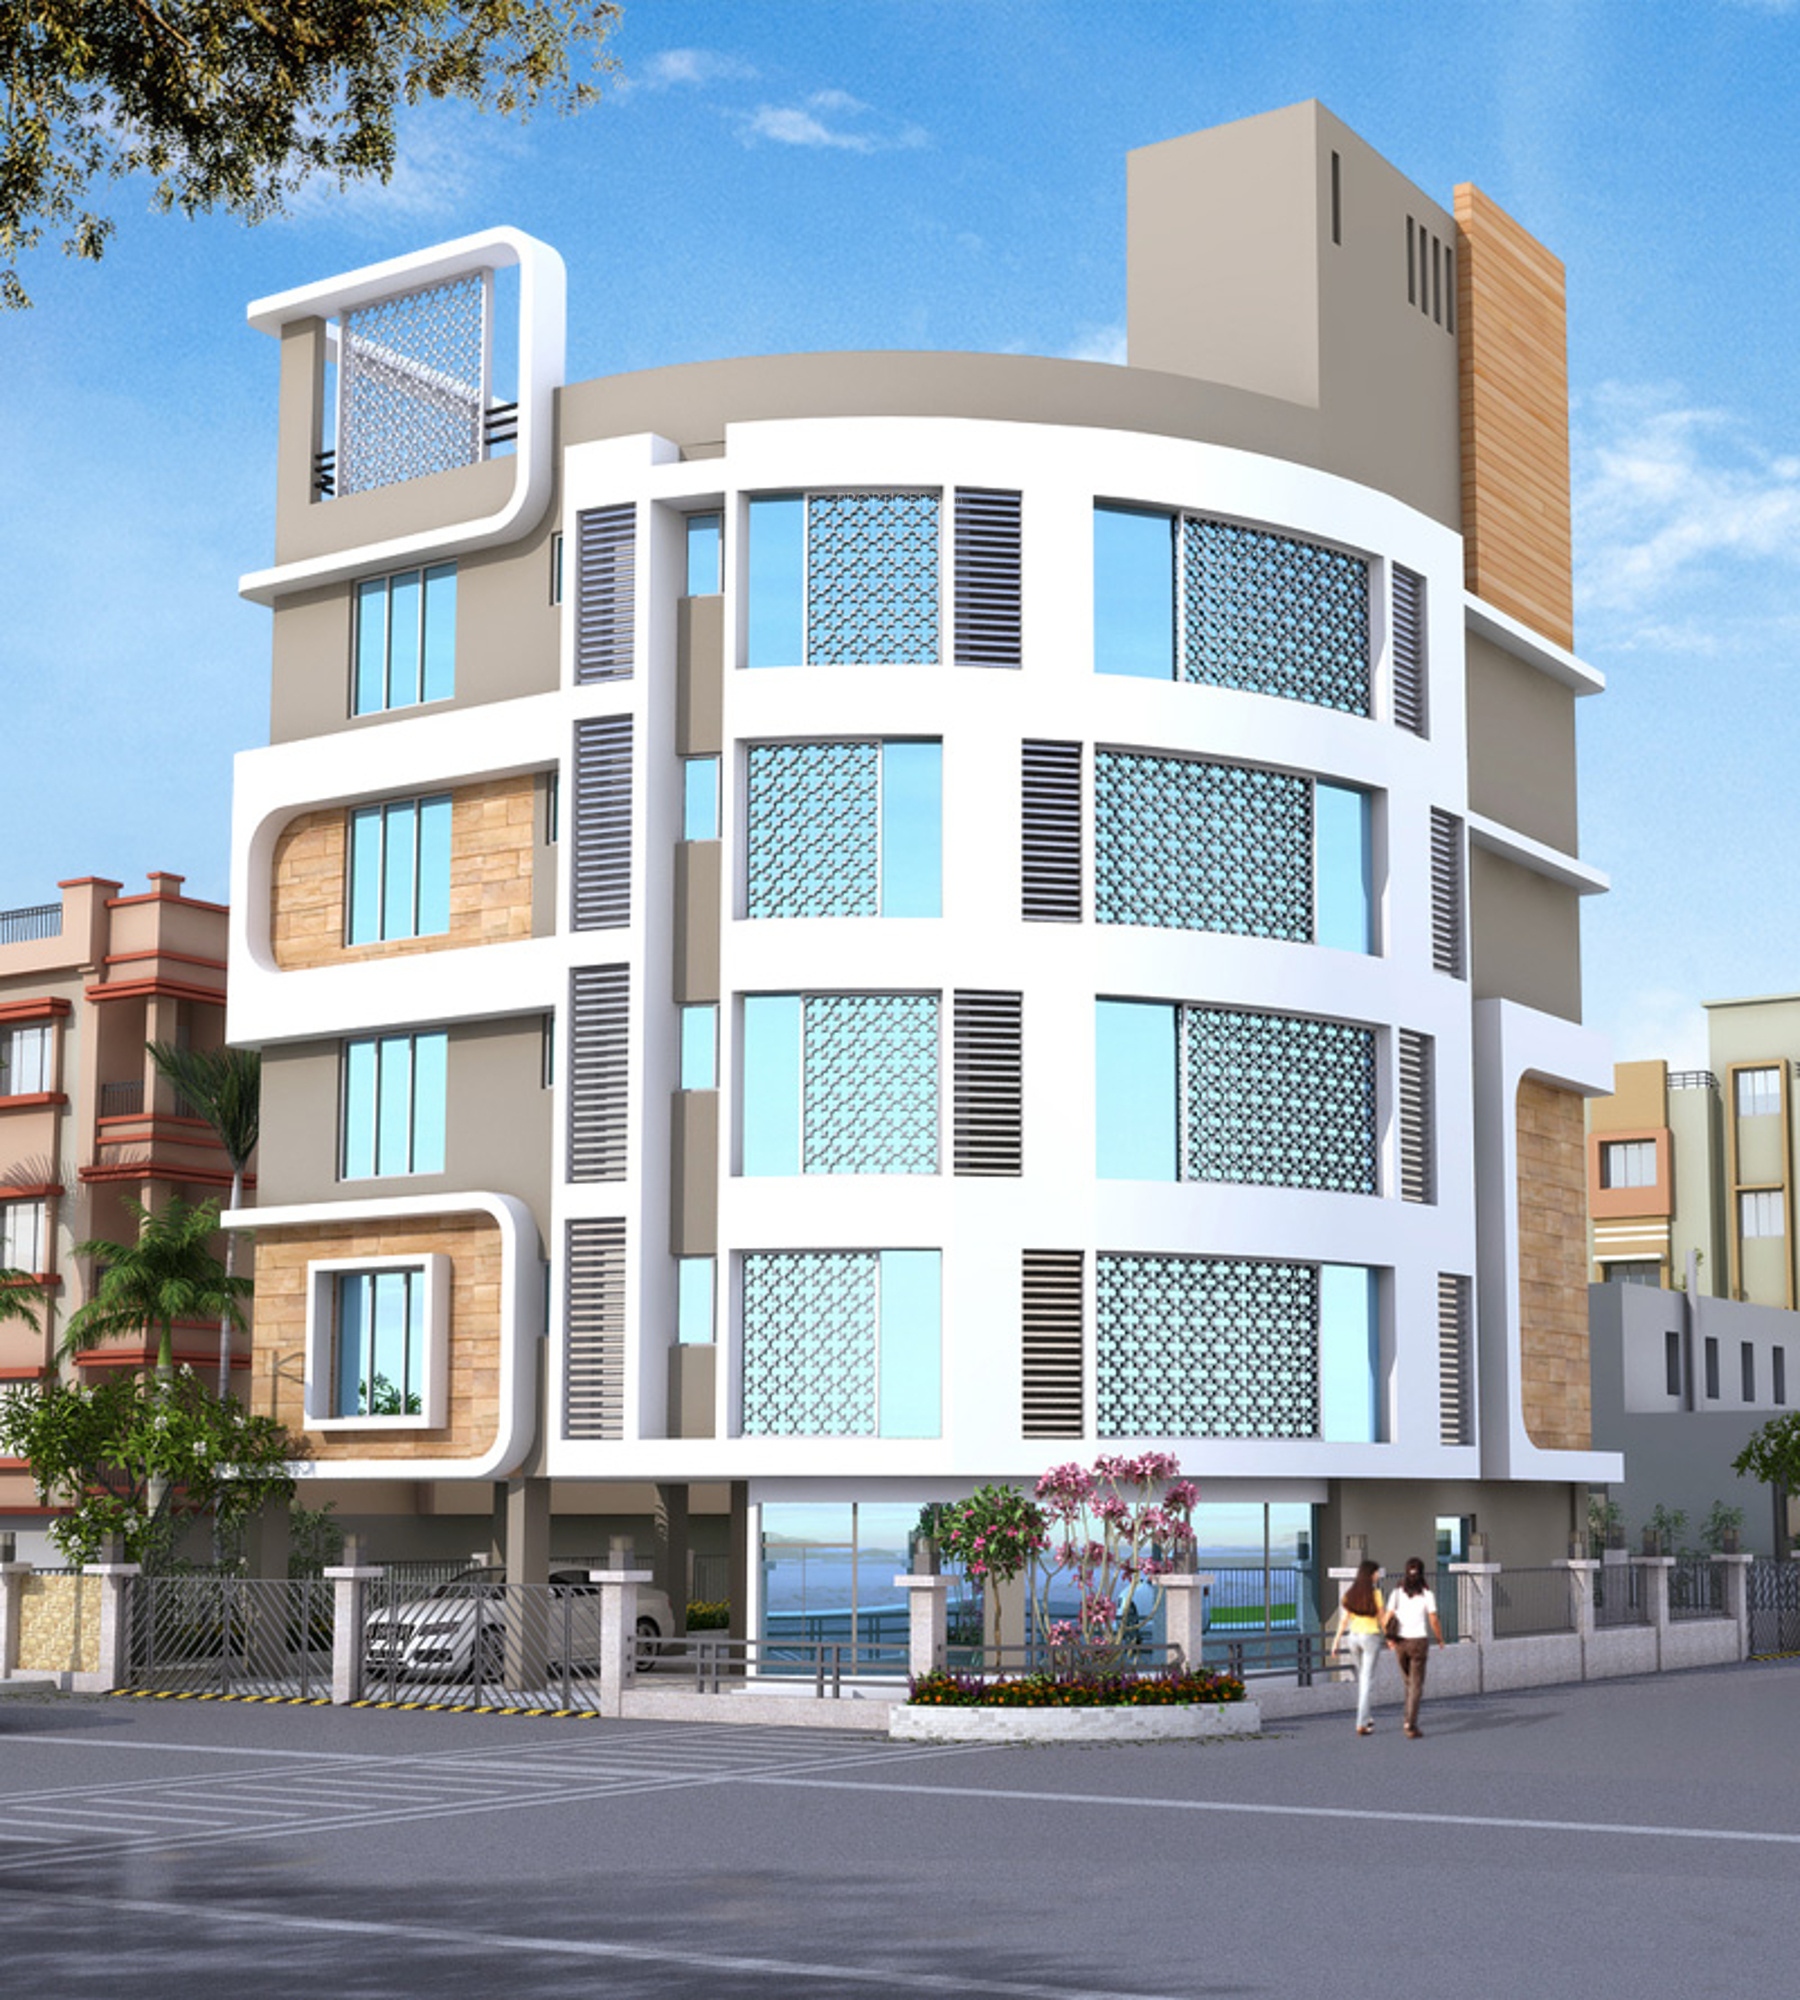 2 Or 3 Bhk Flat Interior Designing Cost In Kolkata: 1700 Sq Ft 3 BHK 2T Apartment For Sale In Swastic Group